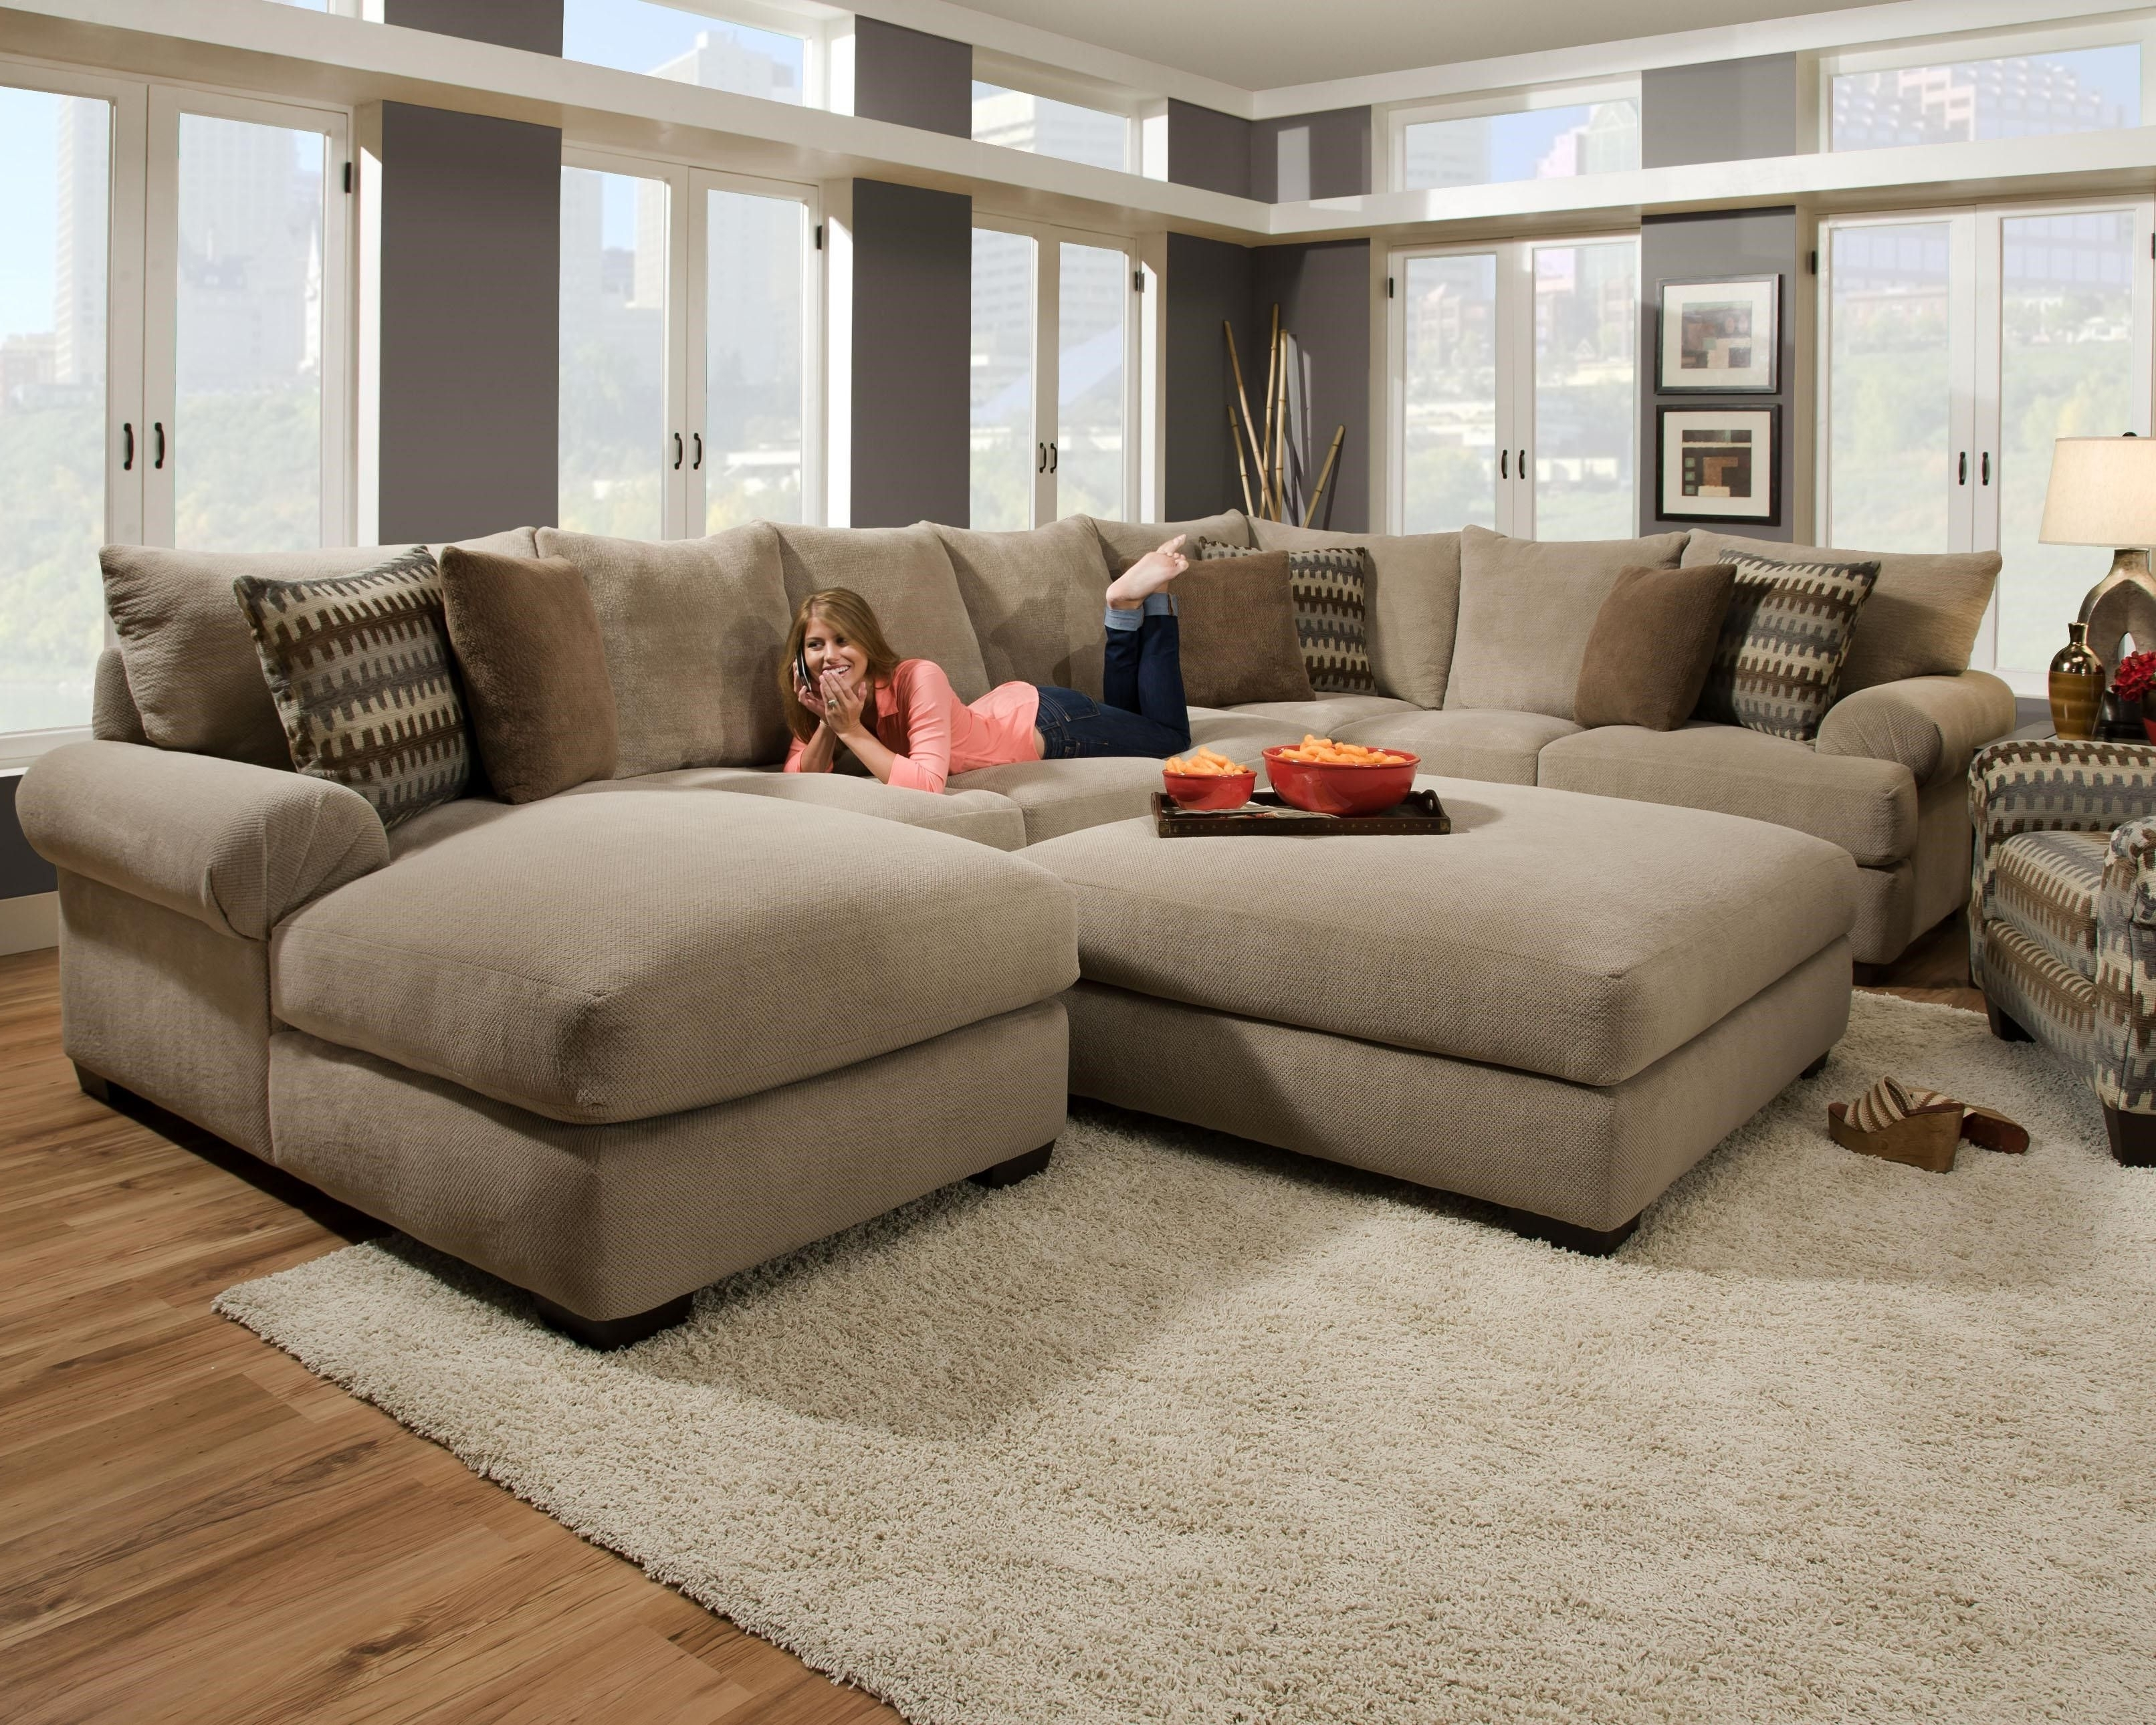 2017 Image For Large Sectional Sofas Cheap (View 2 of 15)